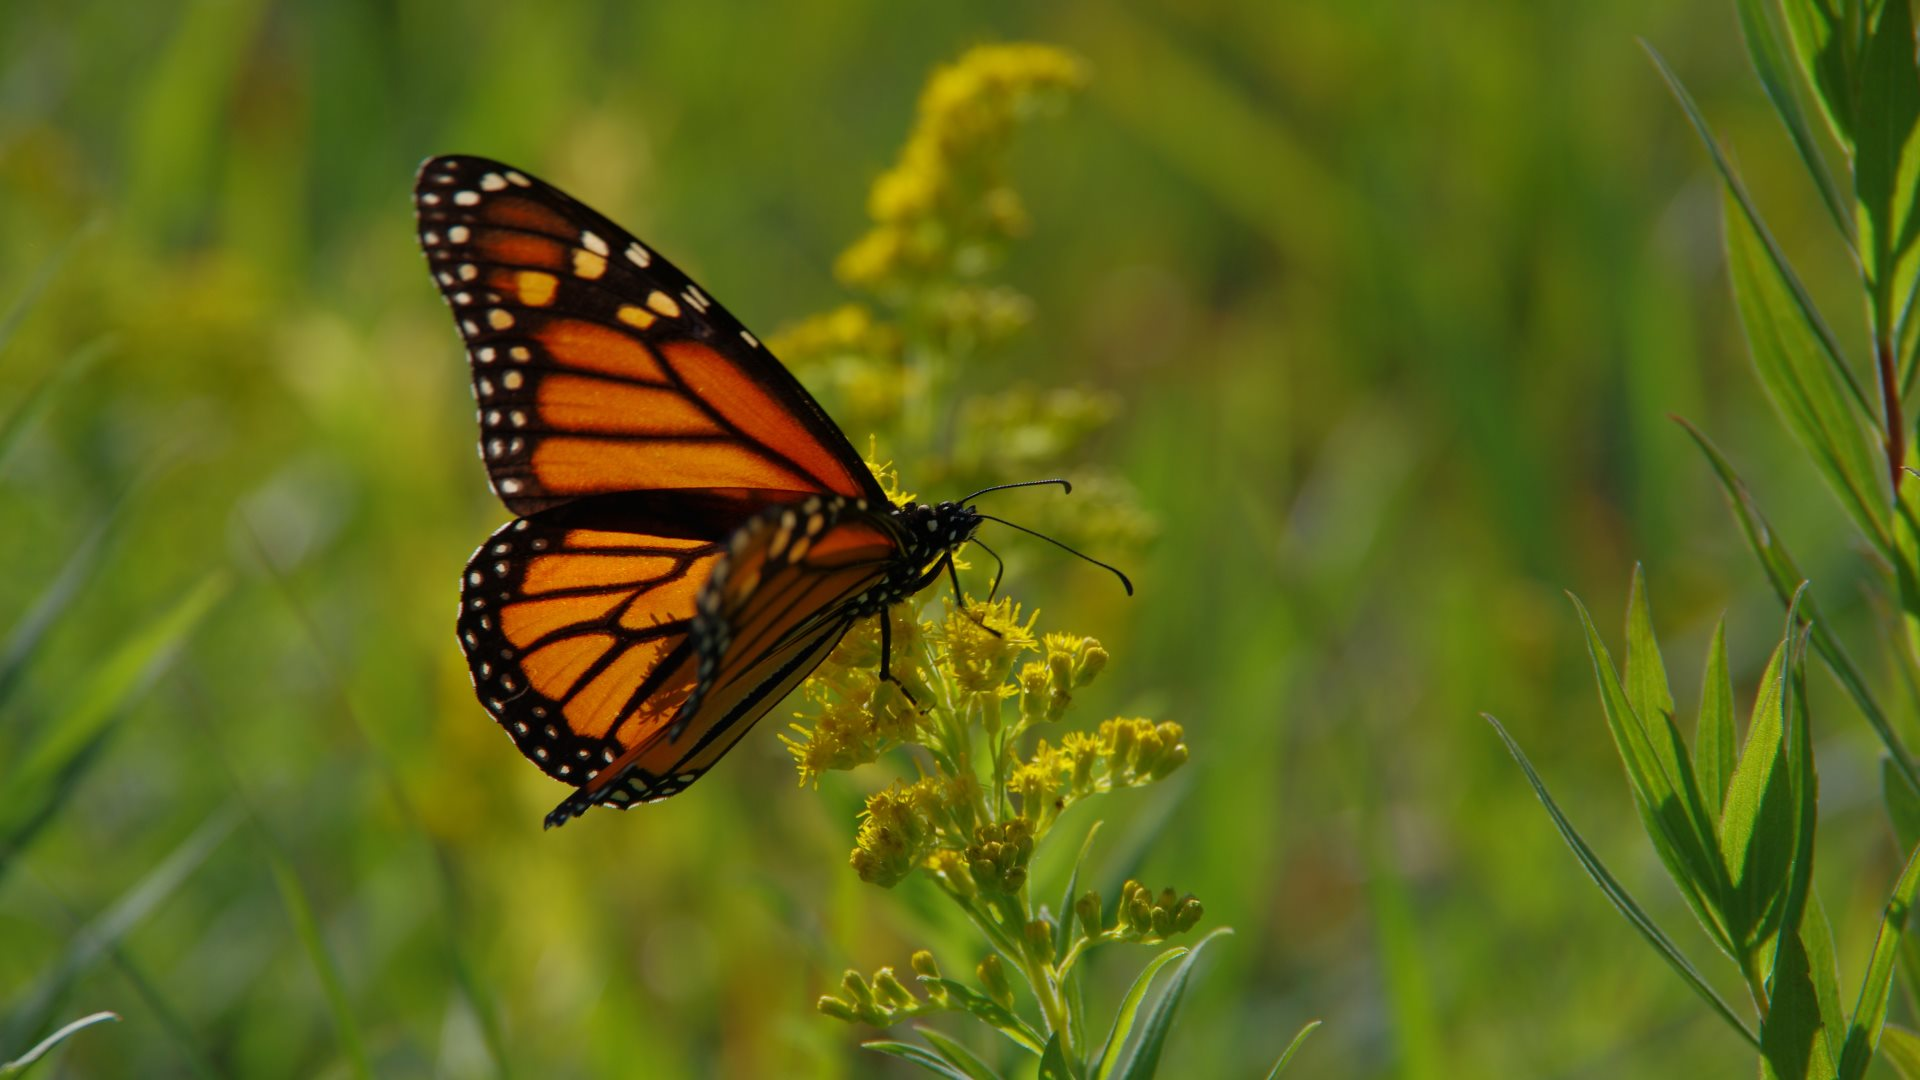 Lady Butterfly and Monarch Butterfly Wallpapers HD Wallpapers 1920x1080